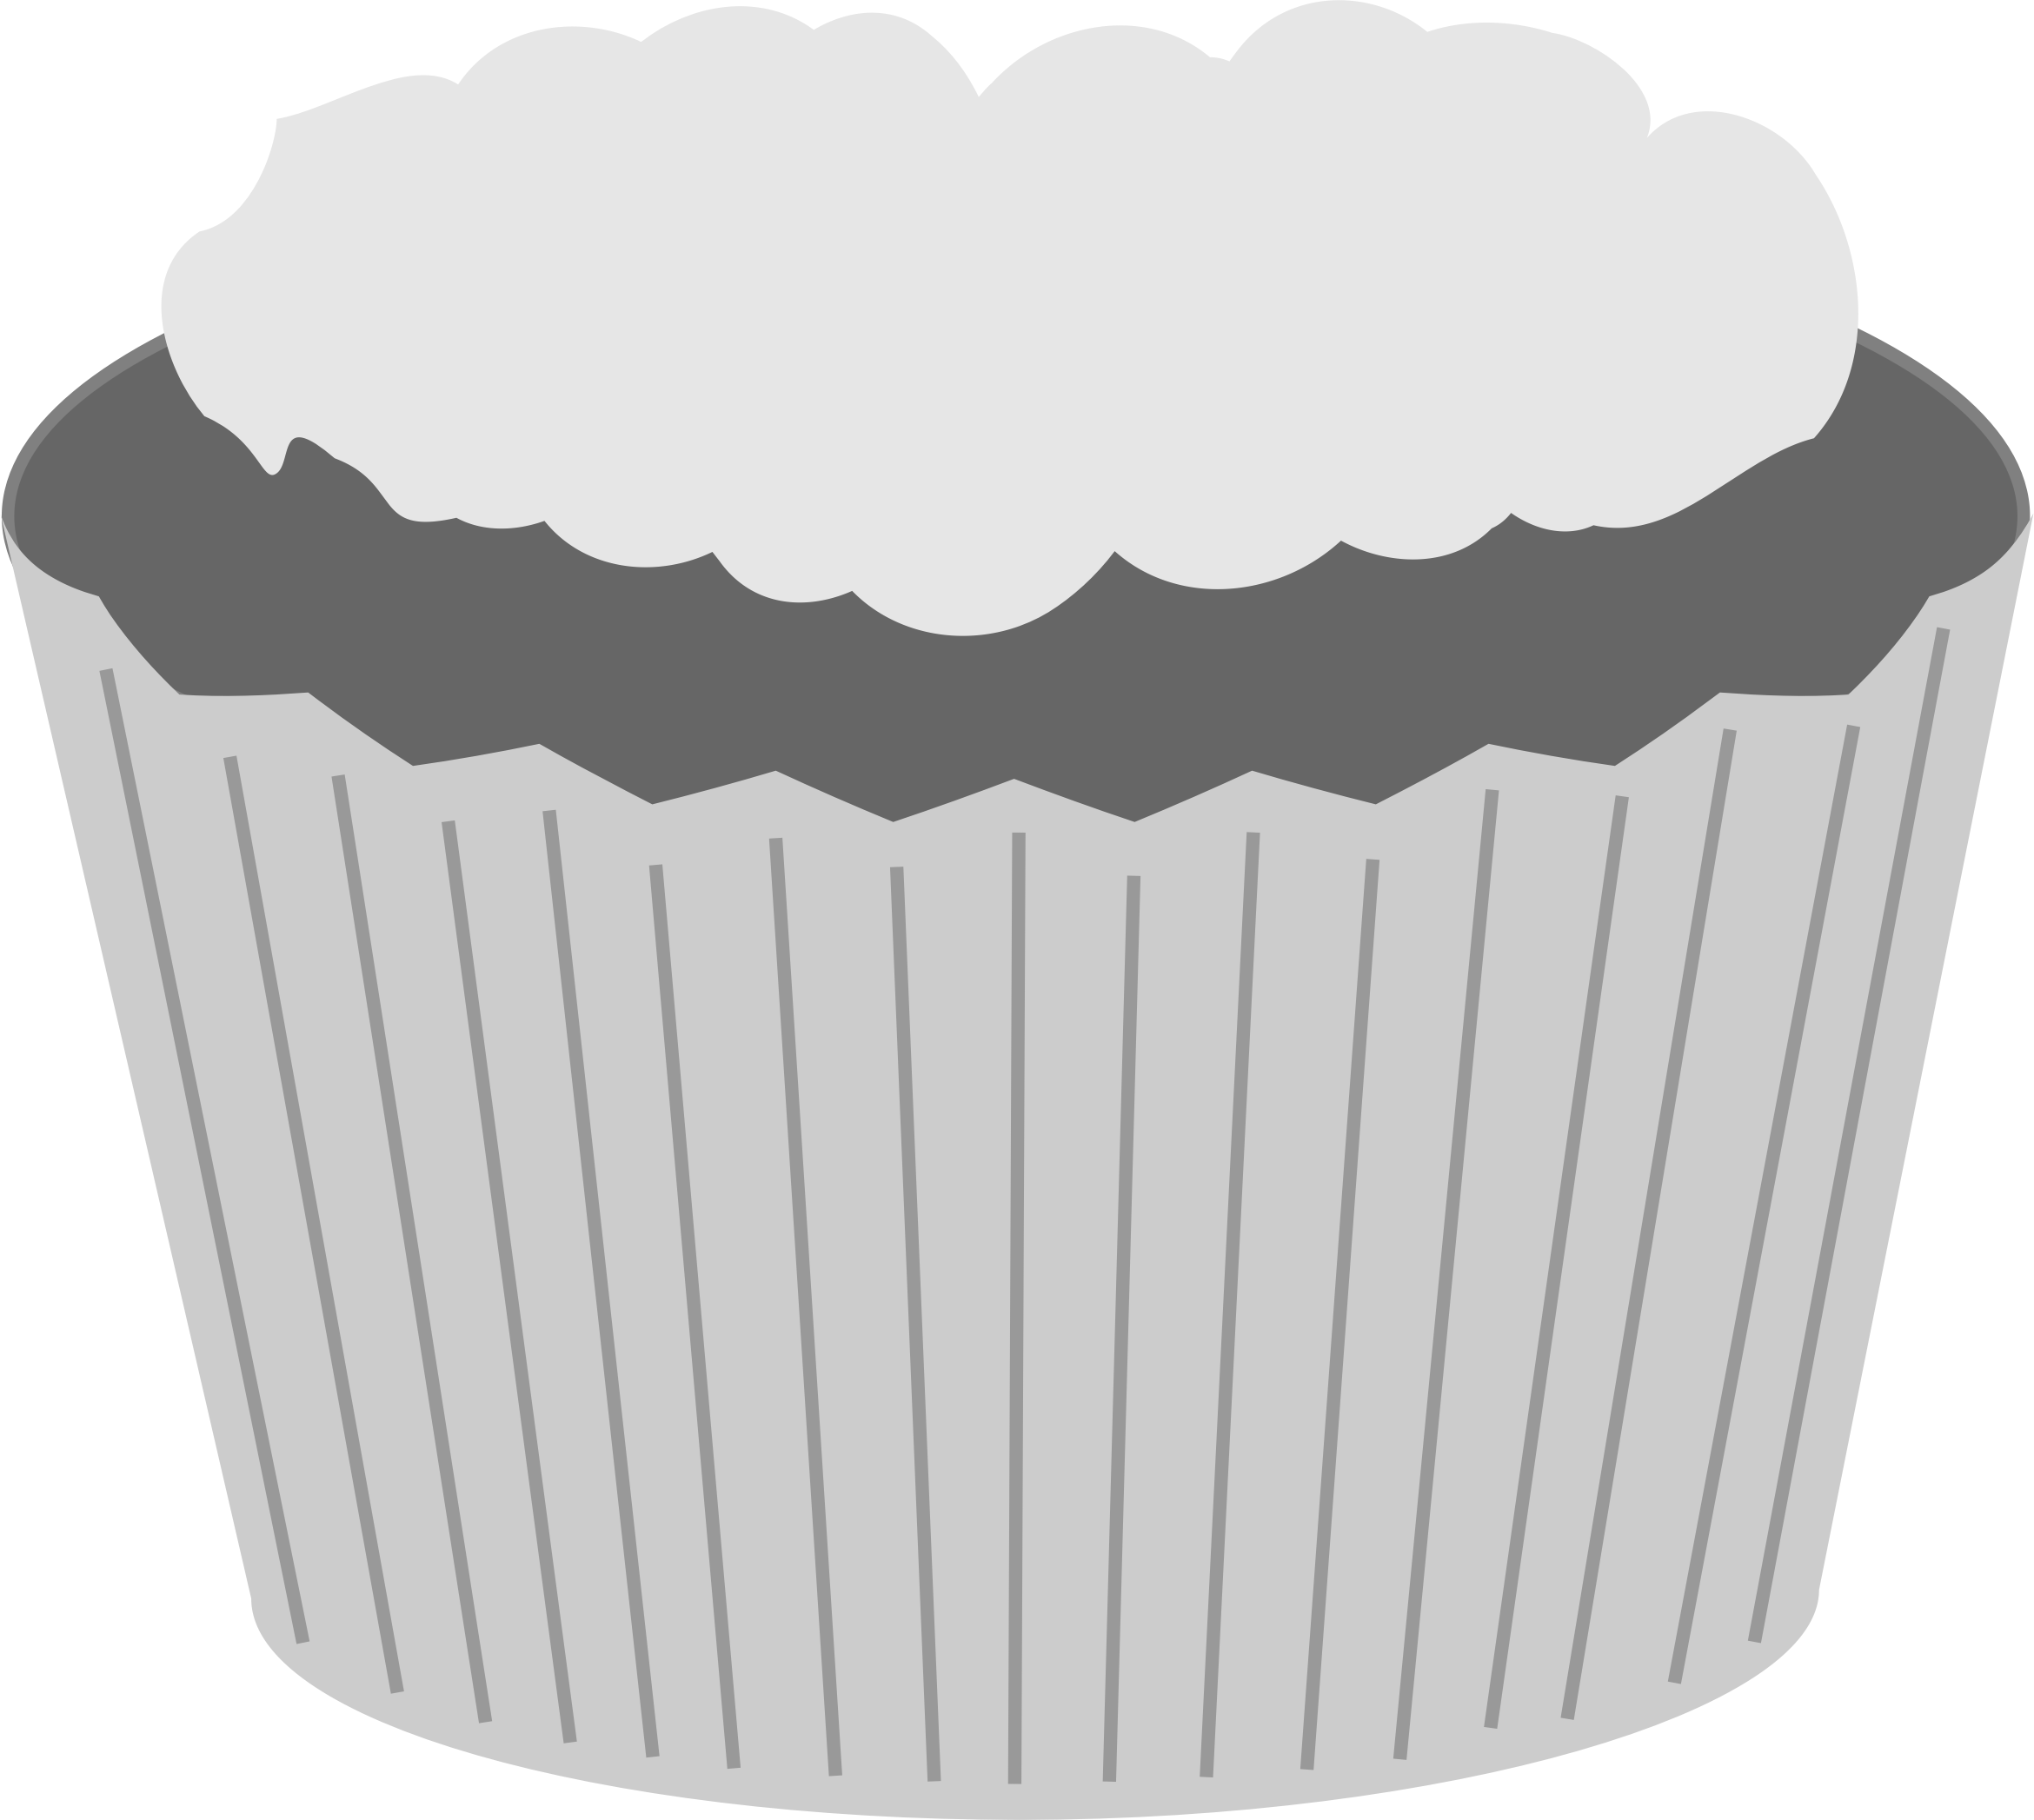 Grayscale cupcake by ScarTissue